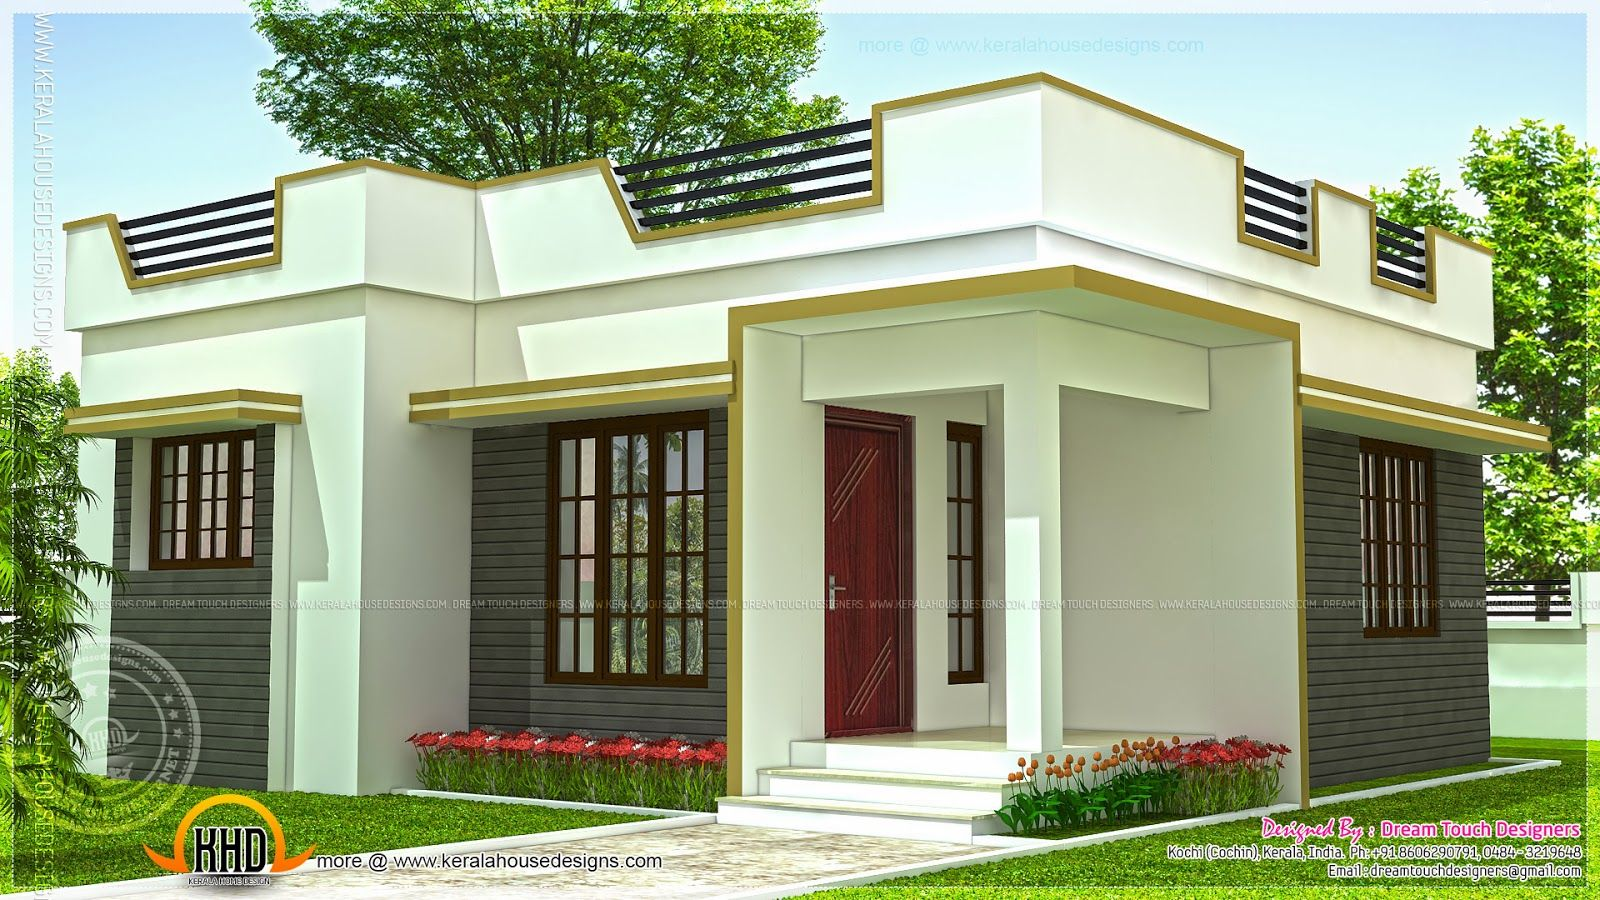 Lately 21 small house design kerala small house Indian model house plan design